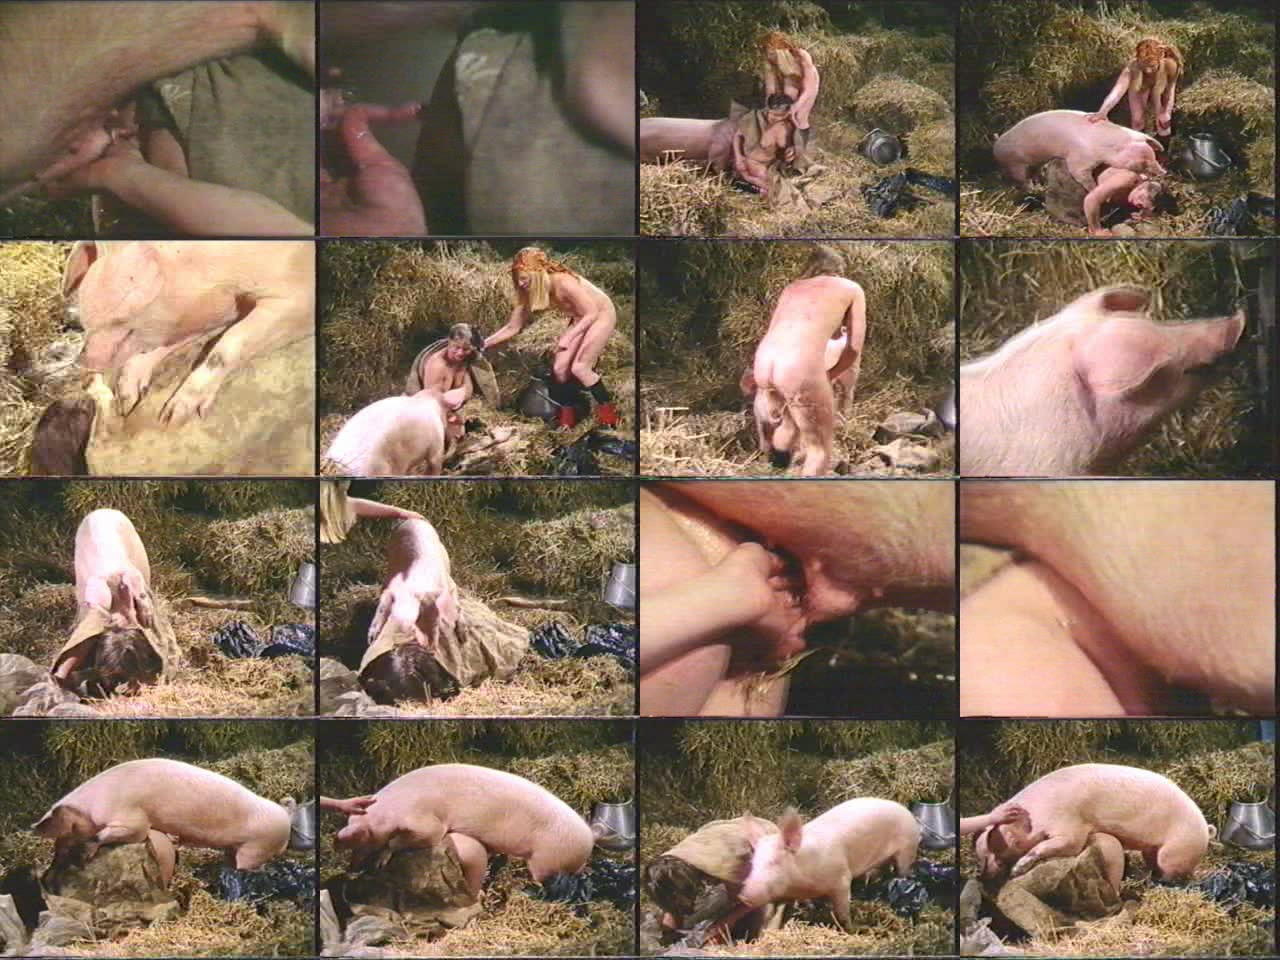 Pig fucked by girls nackt video